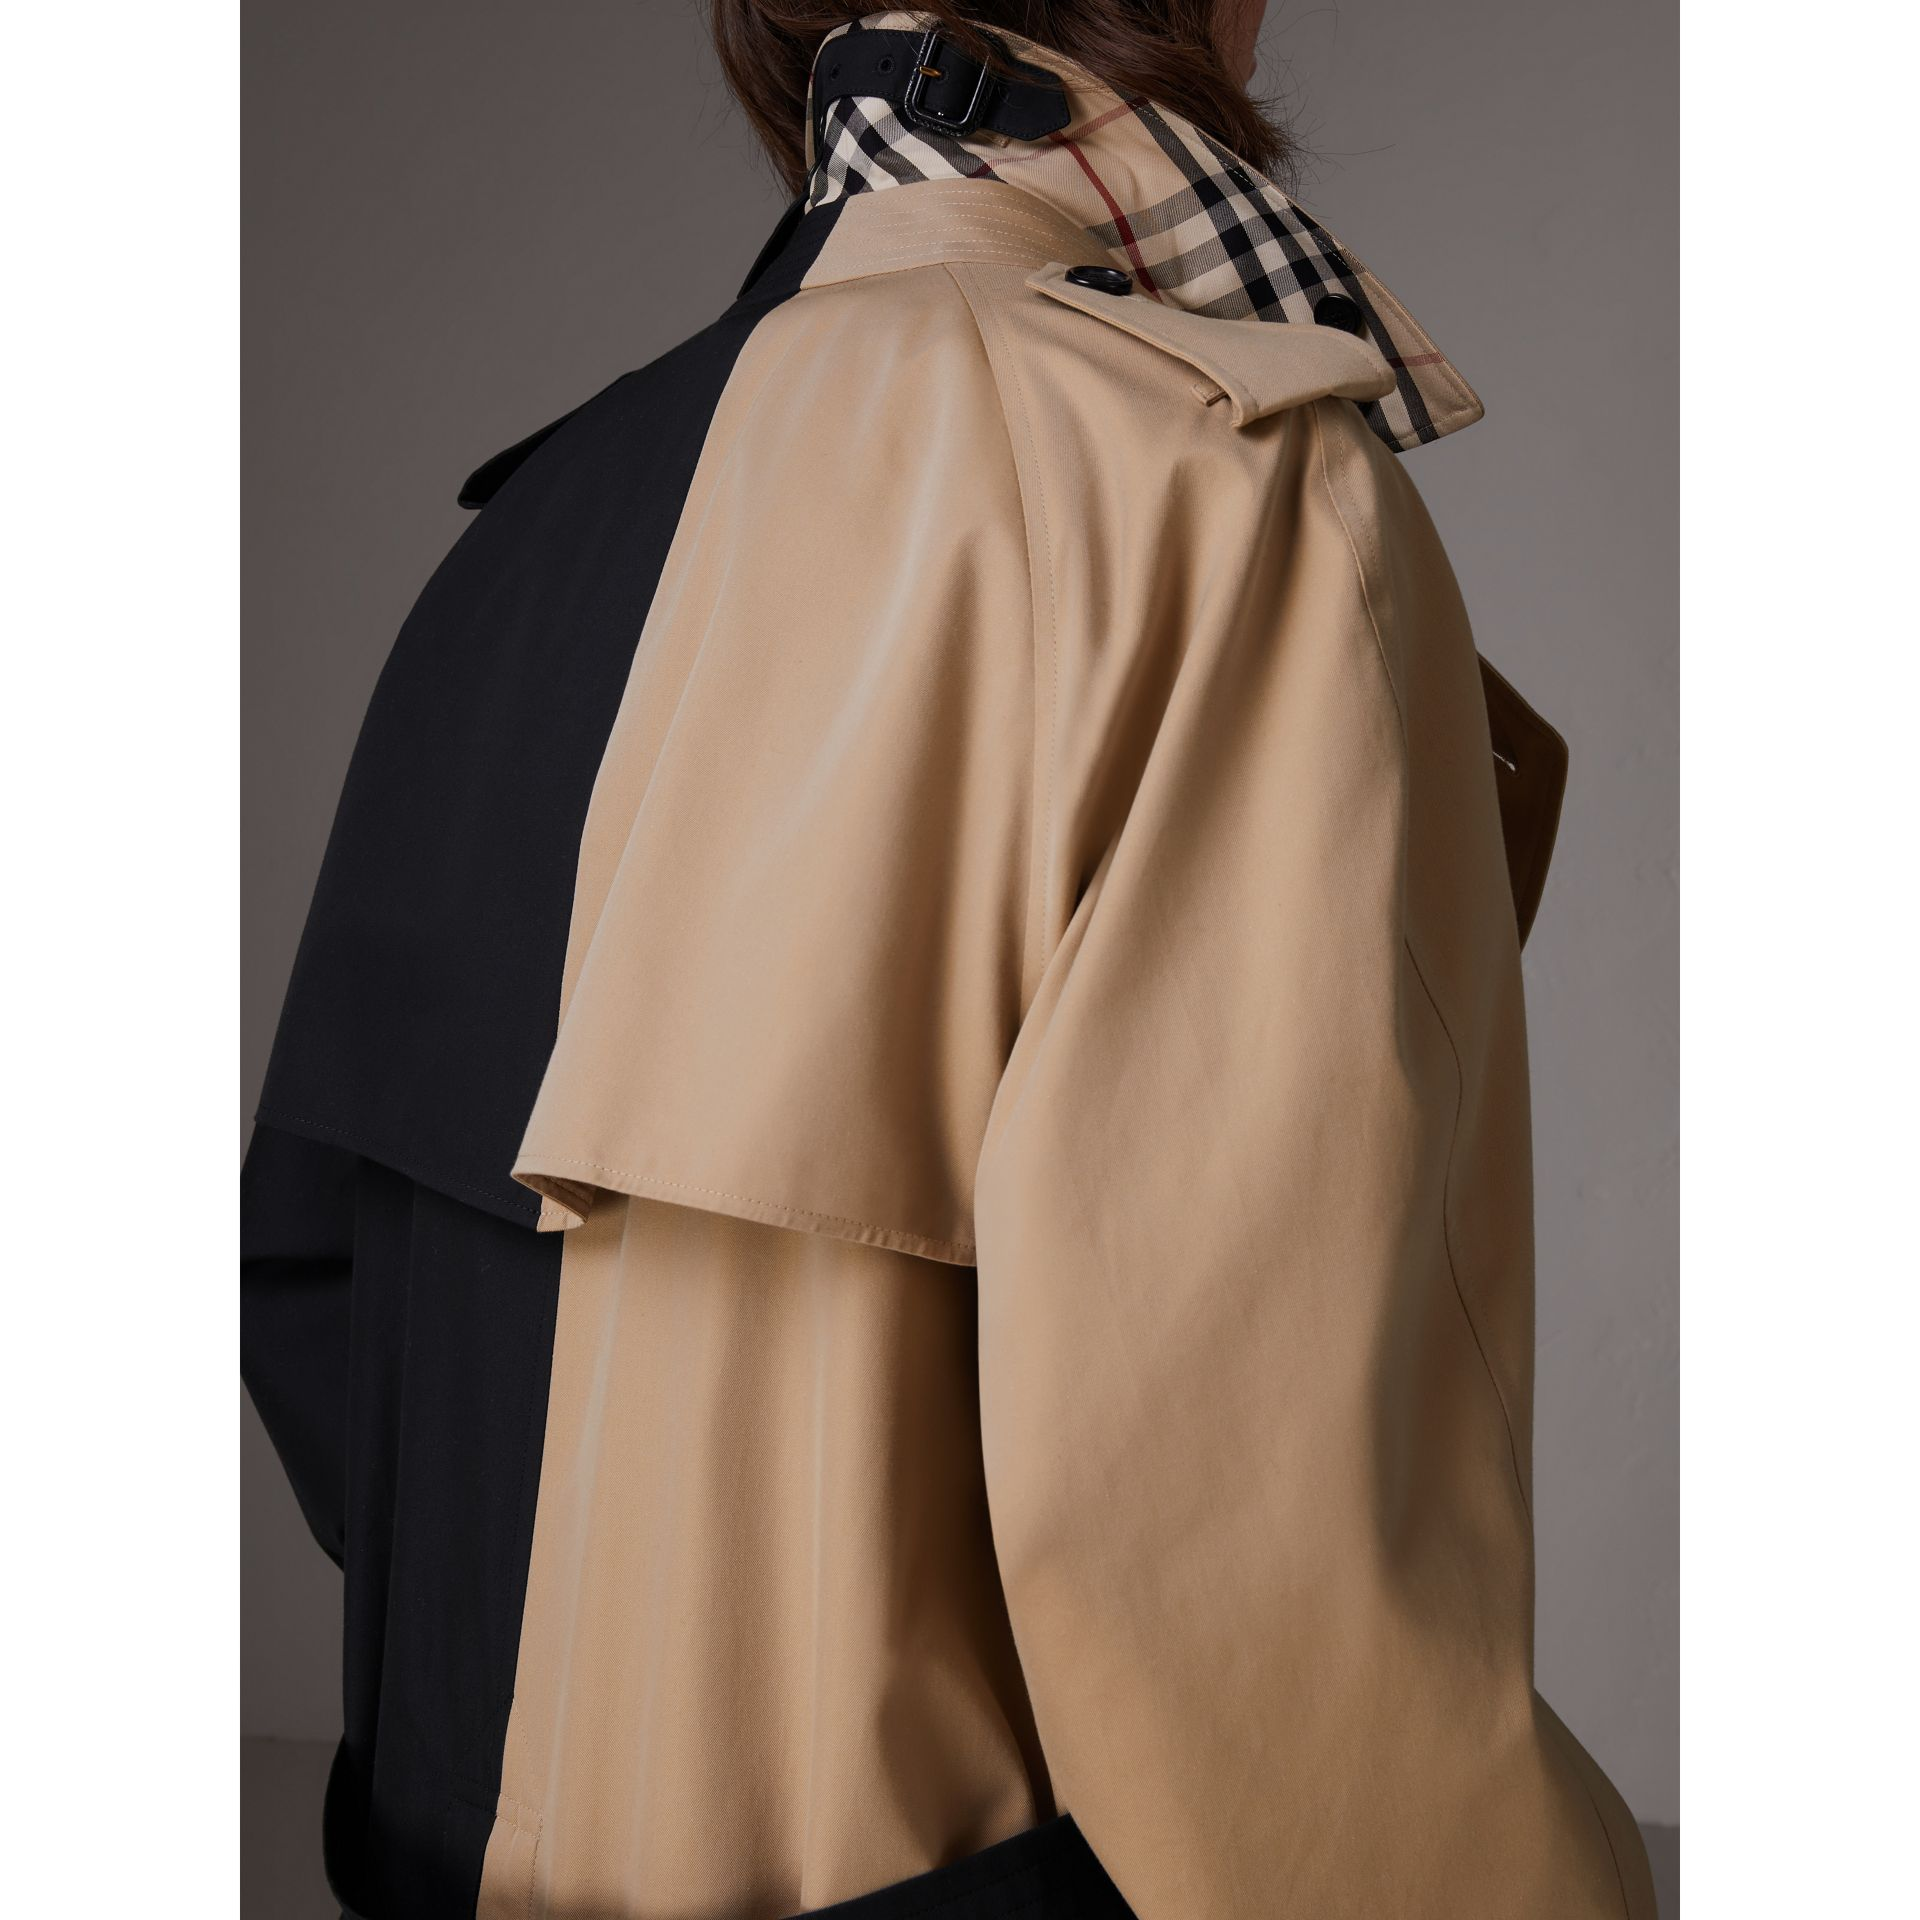 Gosha x Burberry Two-tone Trench Coat in Honey | Burberry Hong Kong - gallery image 5